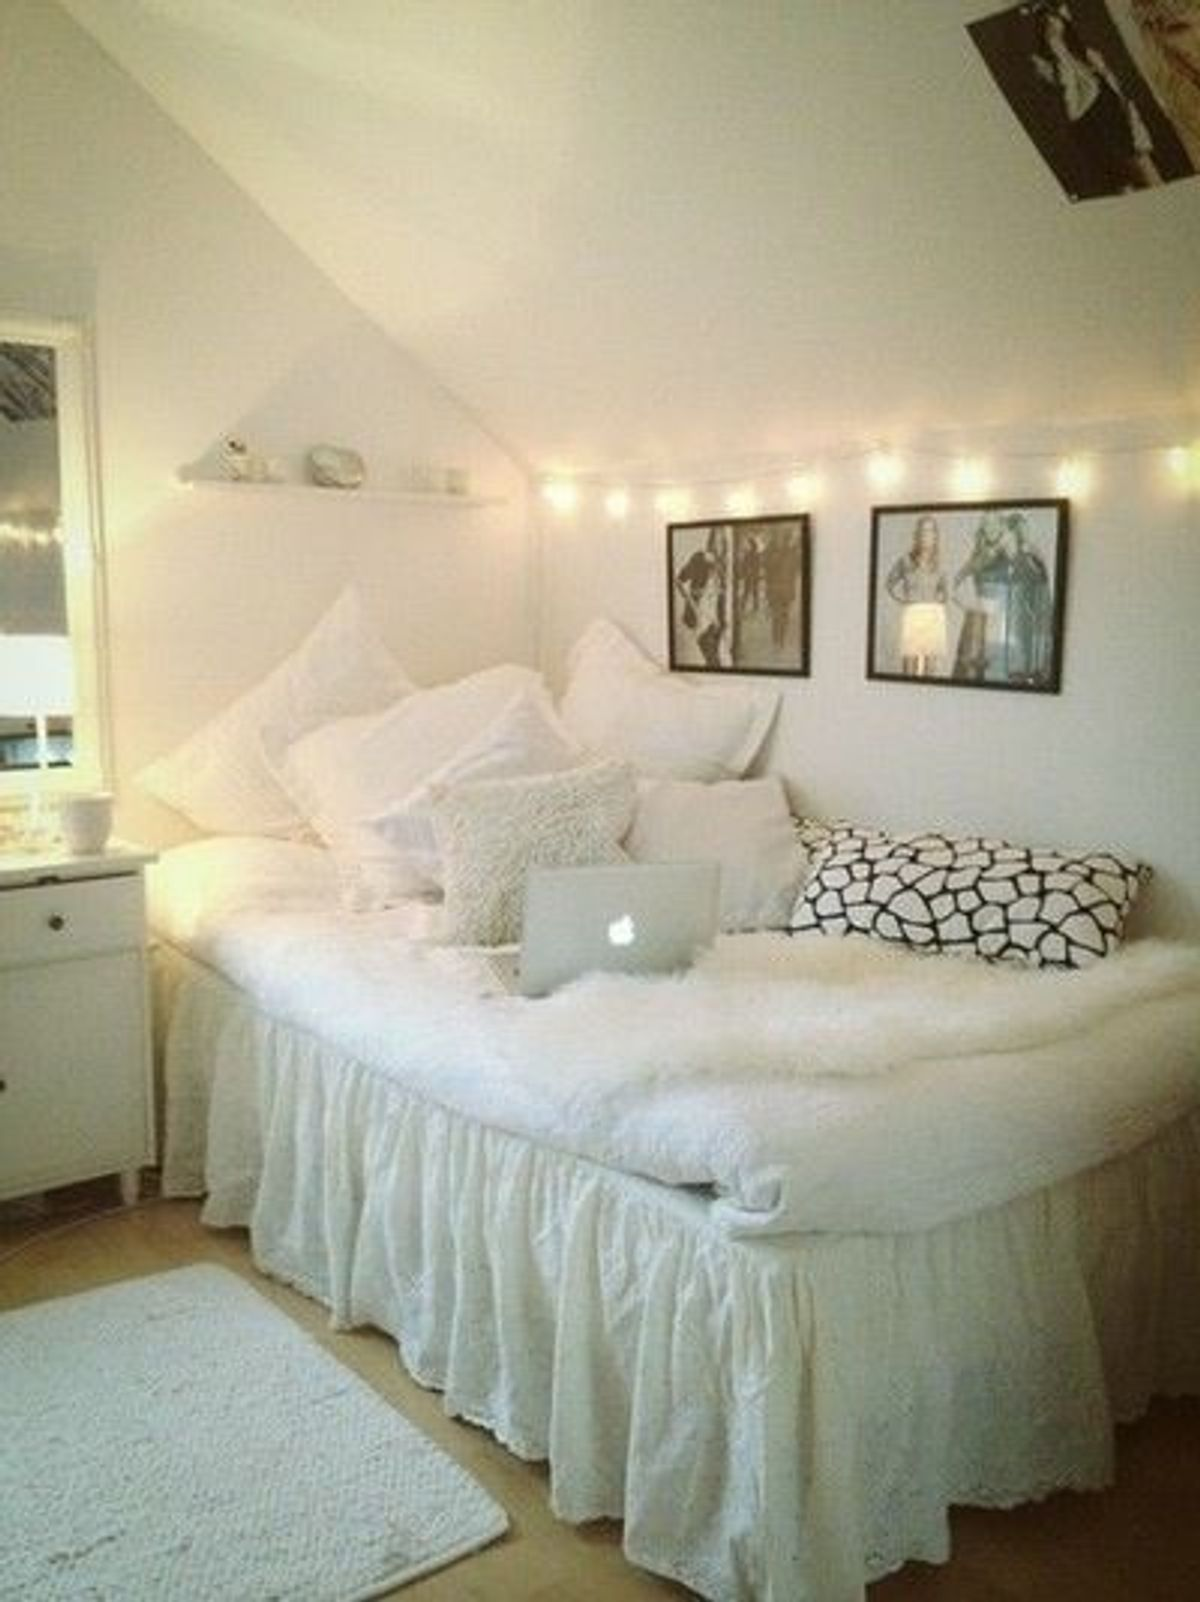 7 Ways To Make Your Room Tumblr Worthy